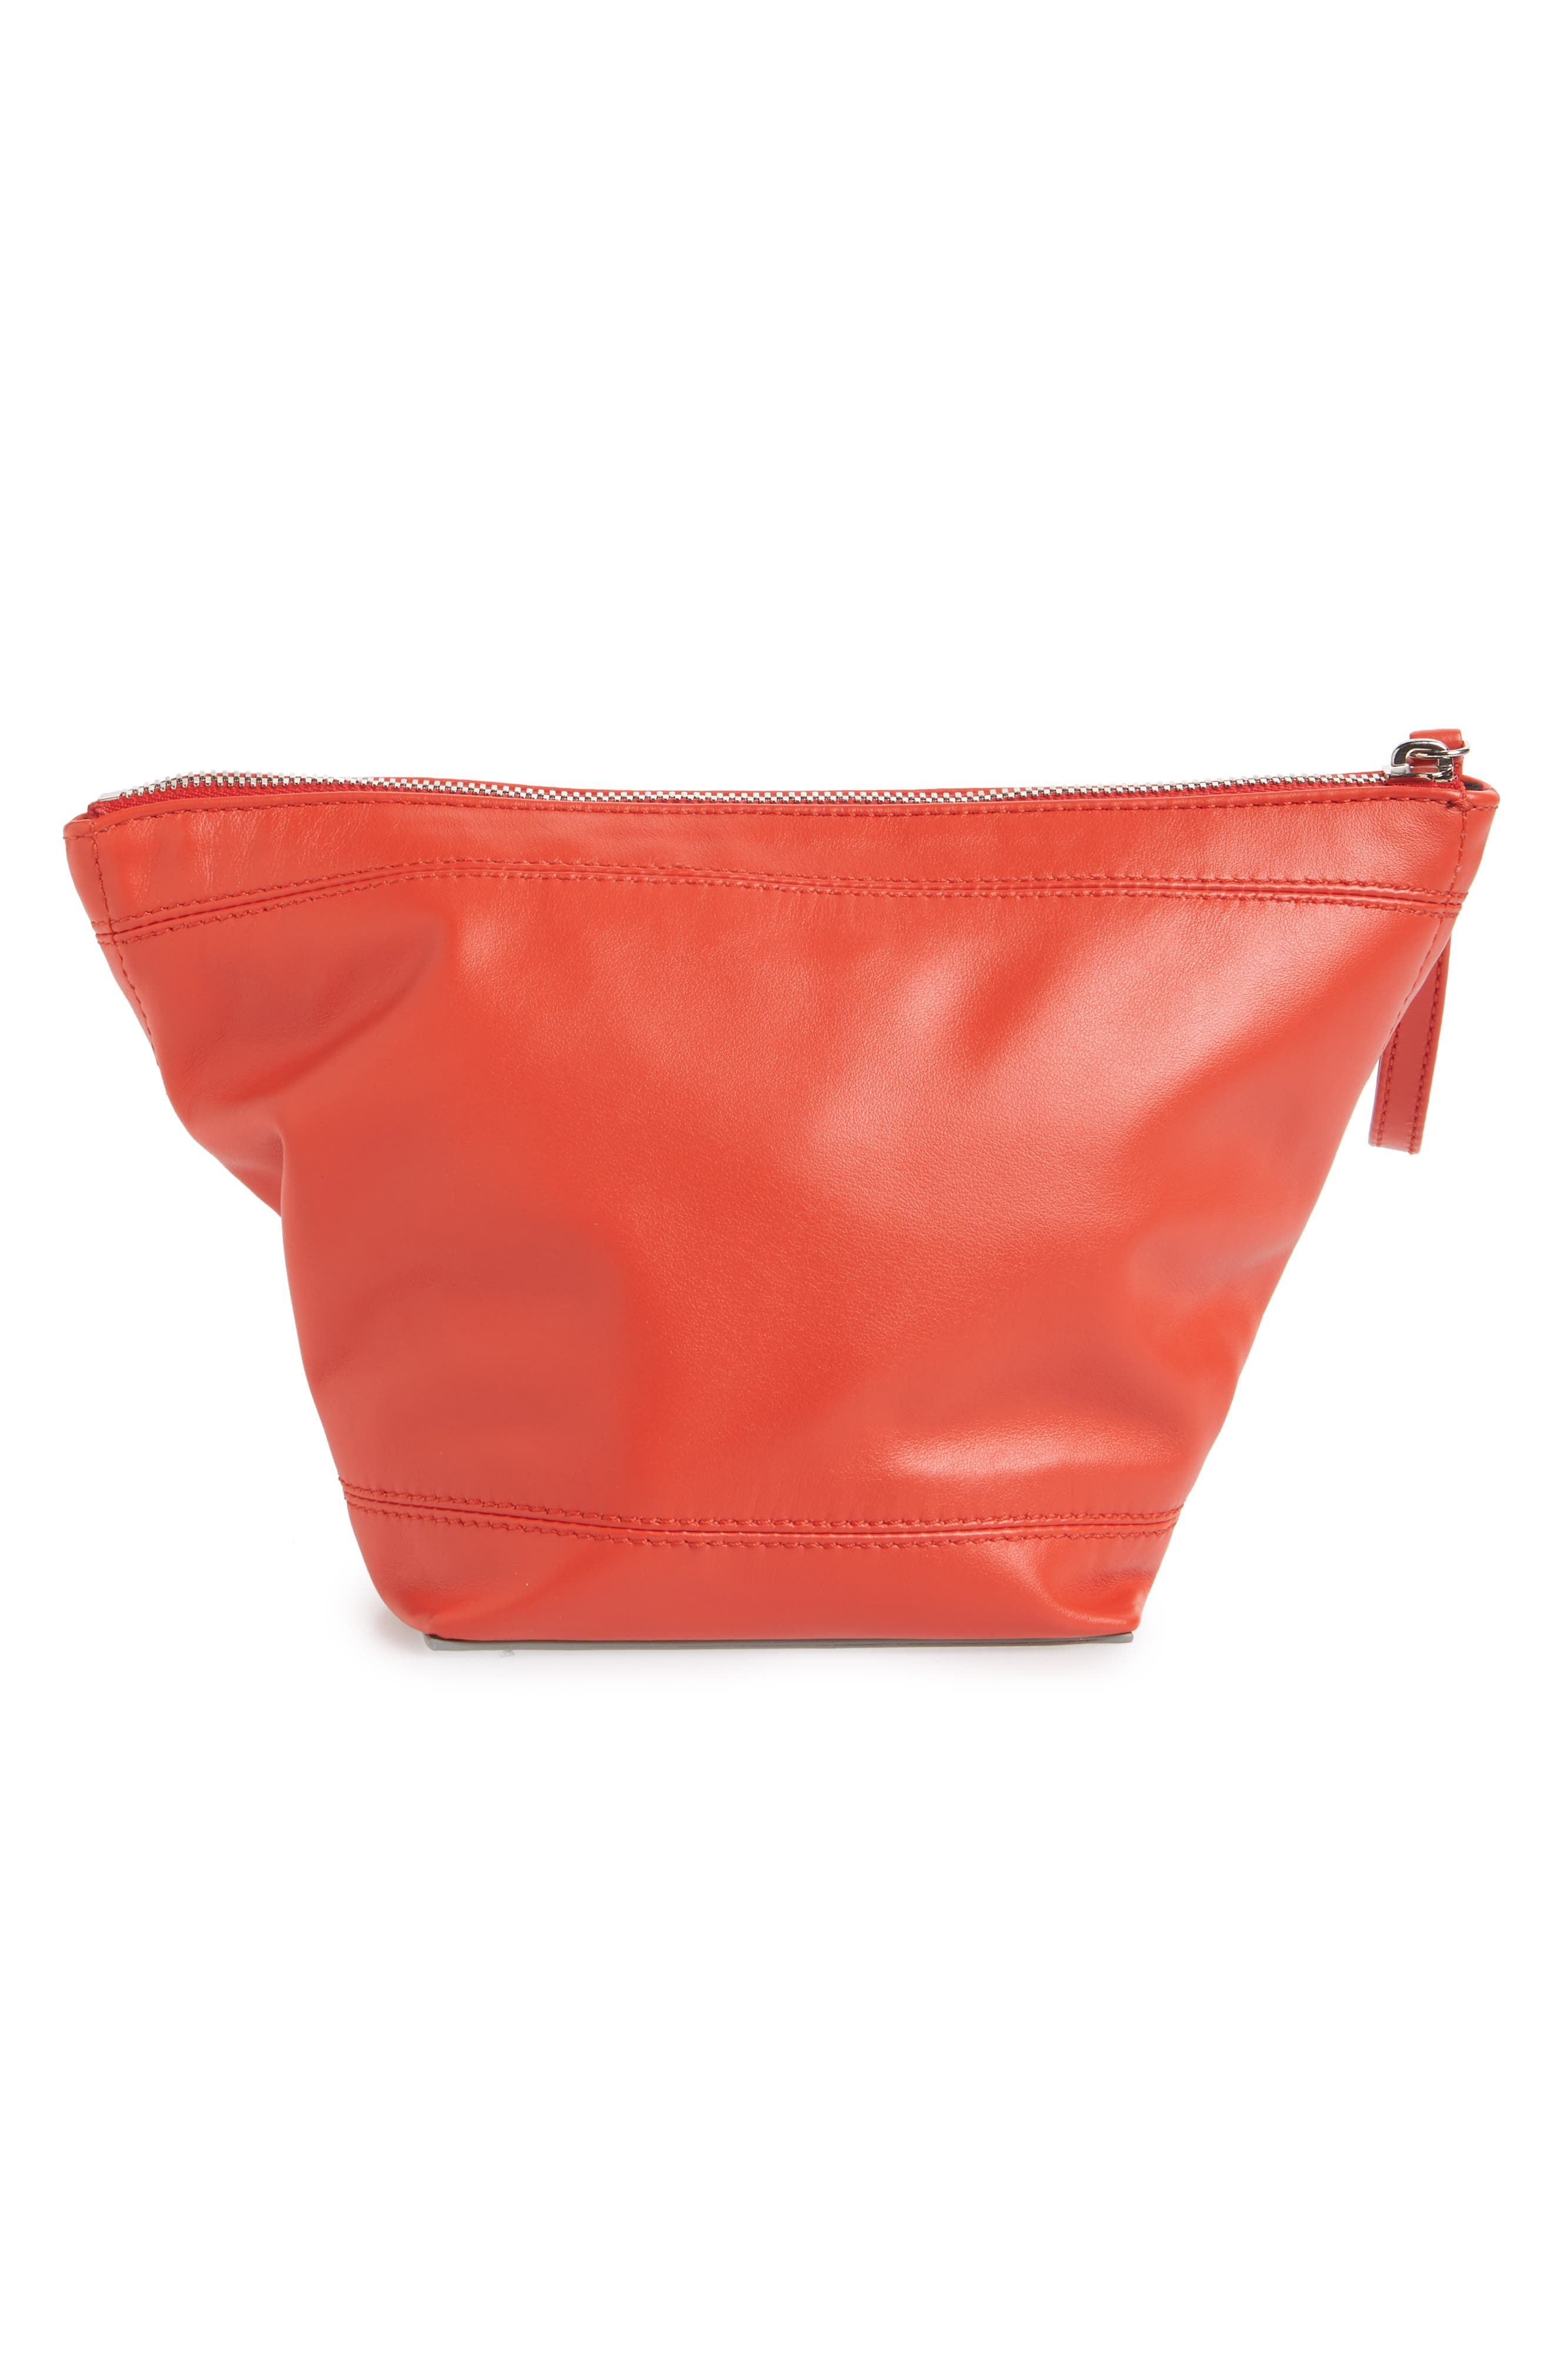 Large Calfskin Leather Cosmetics Bag,                             Alternate thumbnail 2, color,                             RED/ SILVER